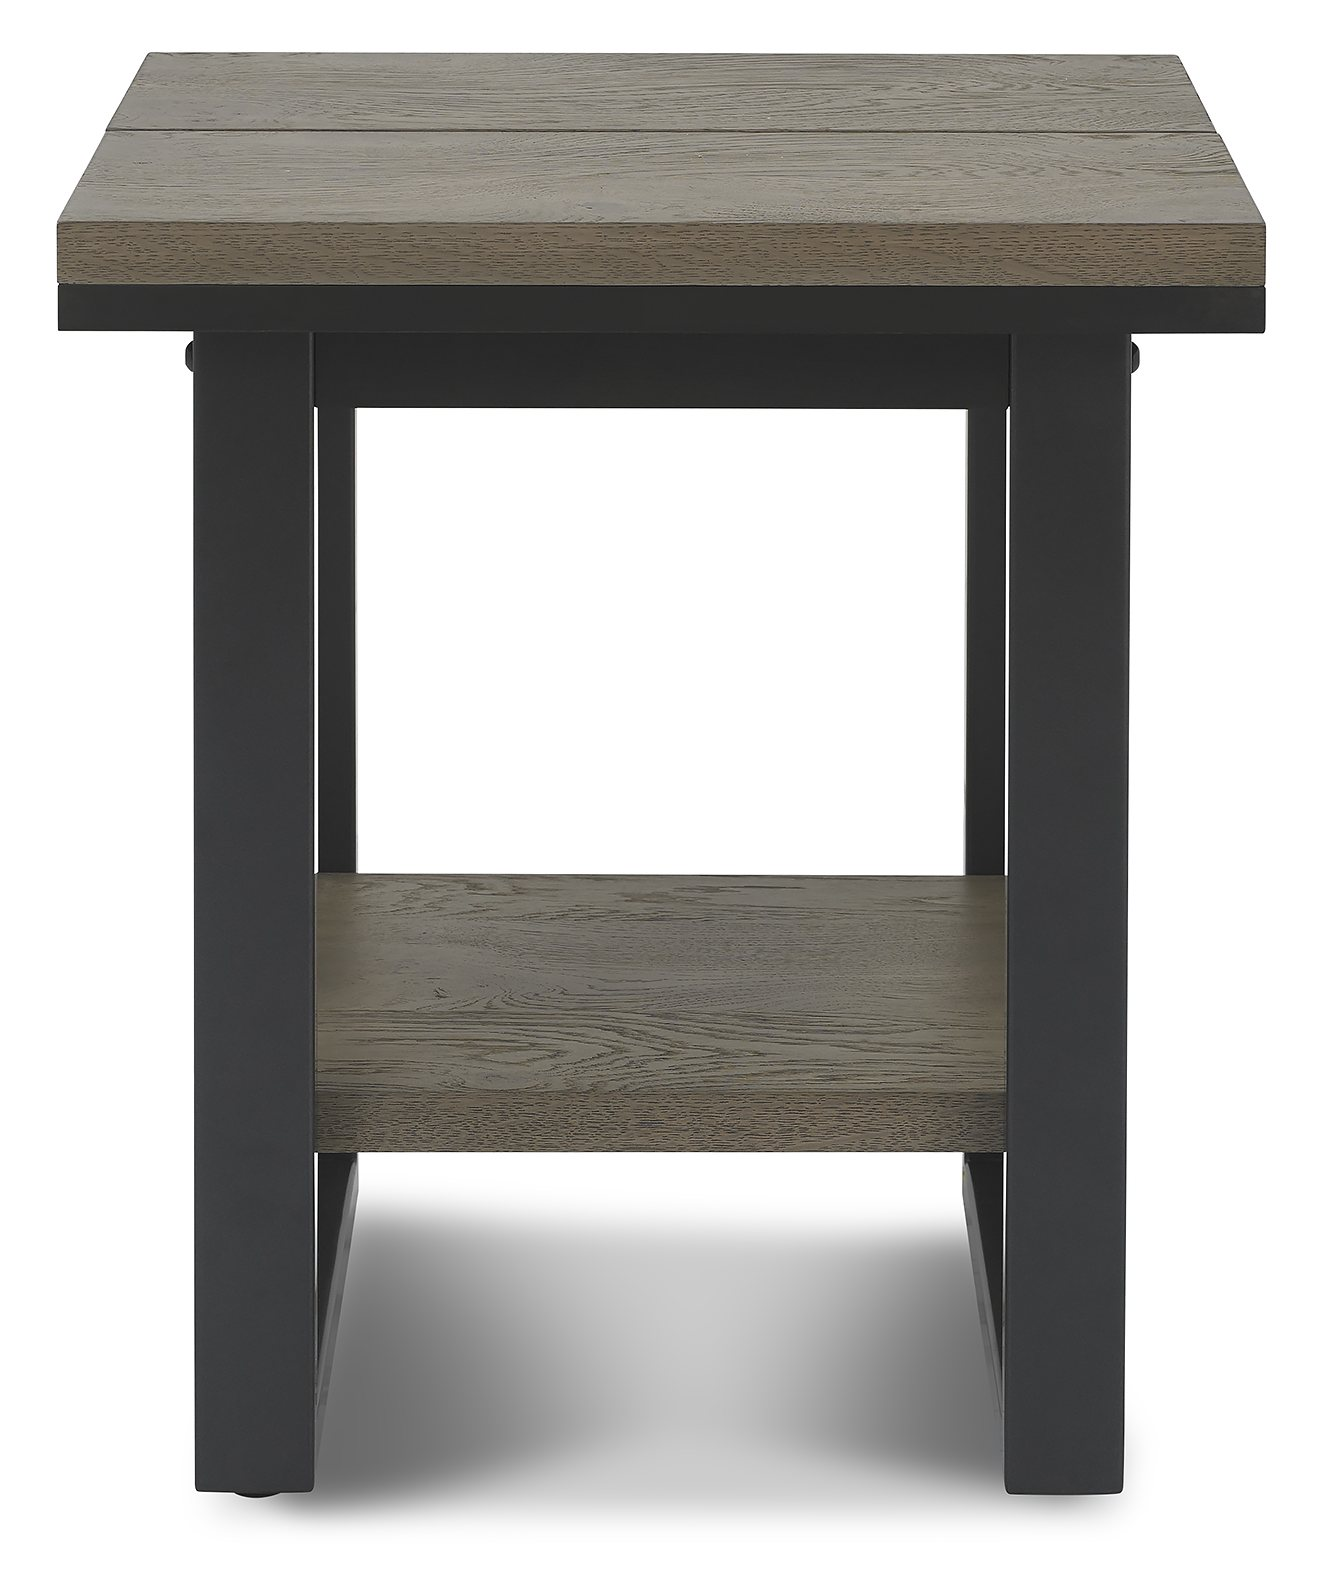 BRINDISI LAMP TABLE - FRONT DETAIL